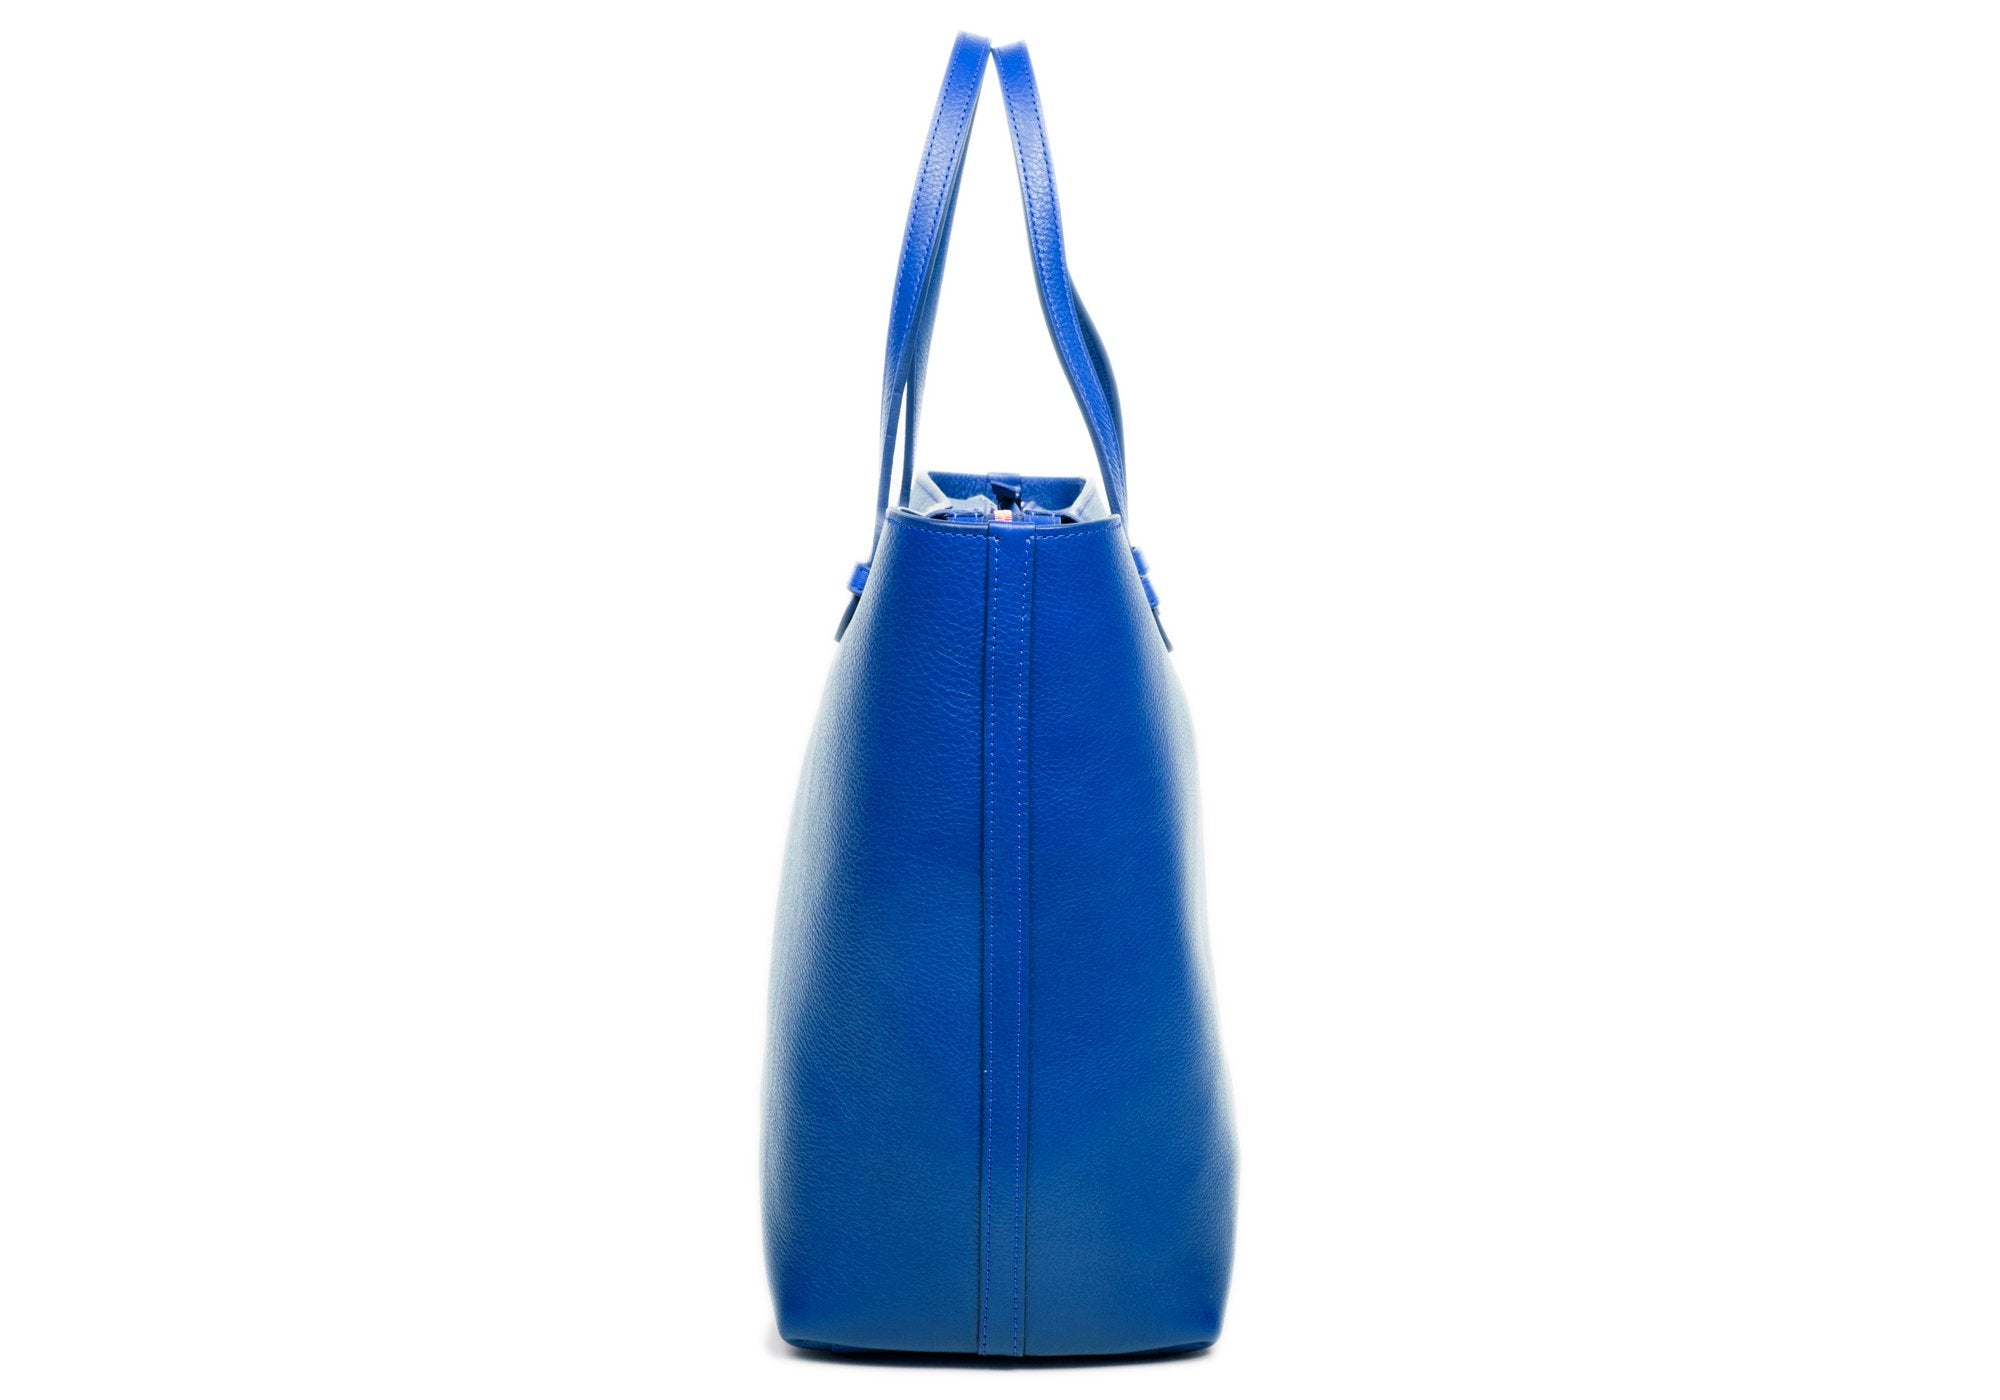 No. 12 Leather Tote Electric Blue